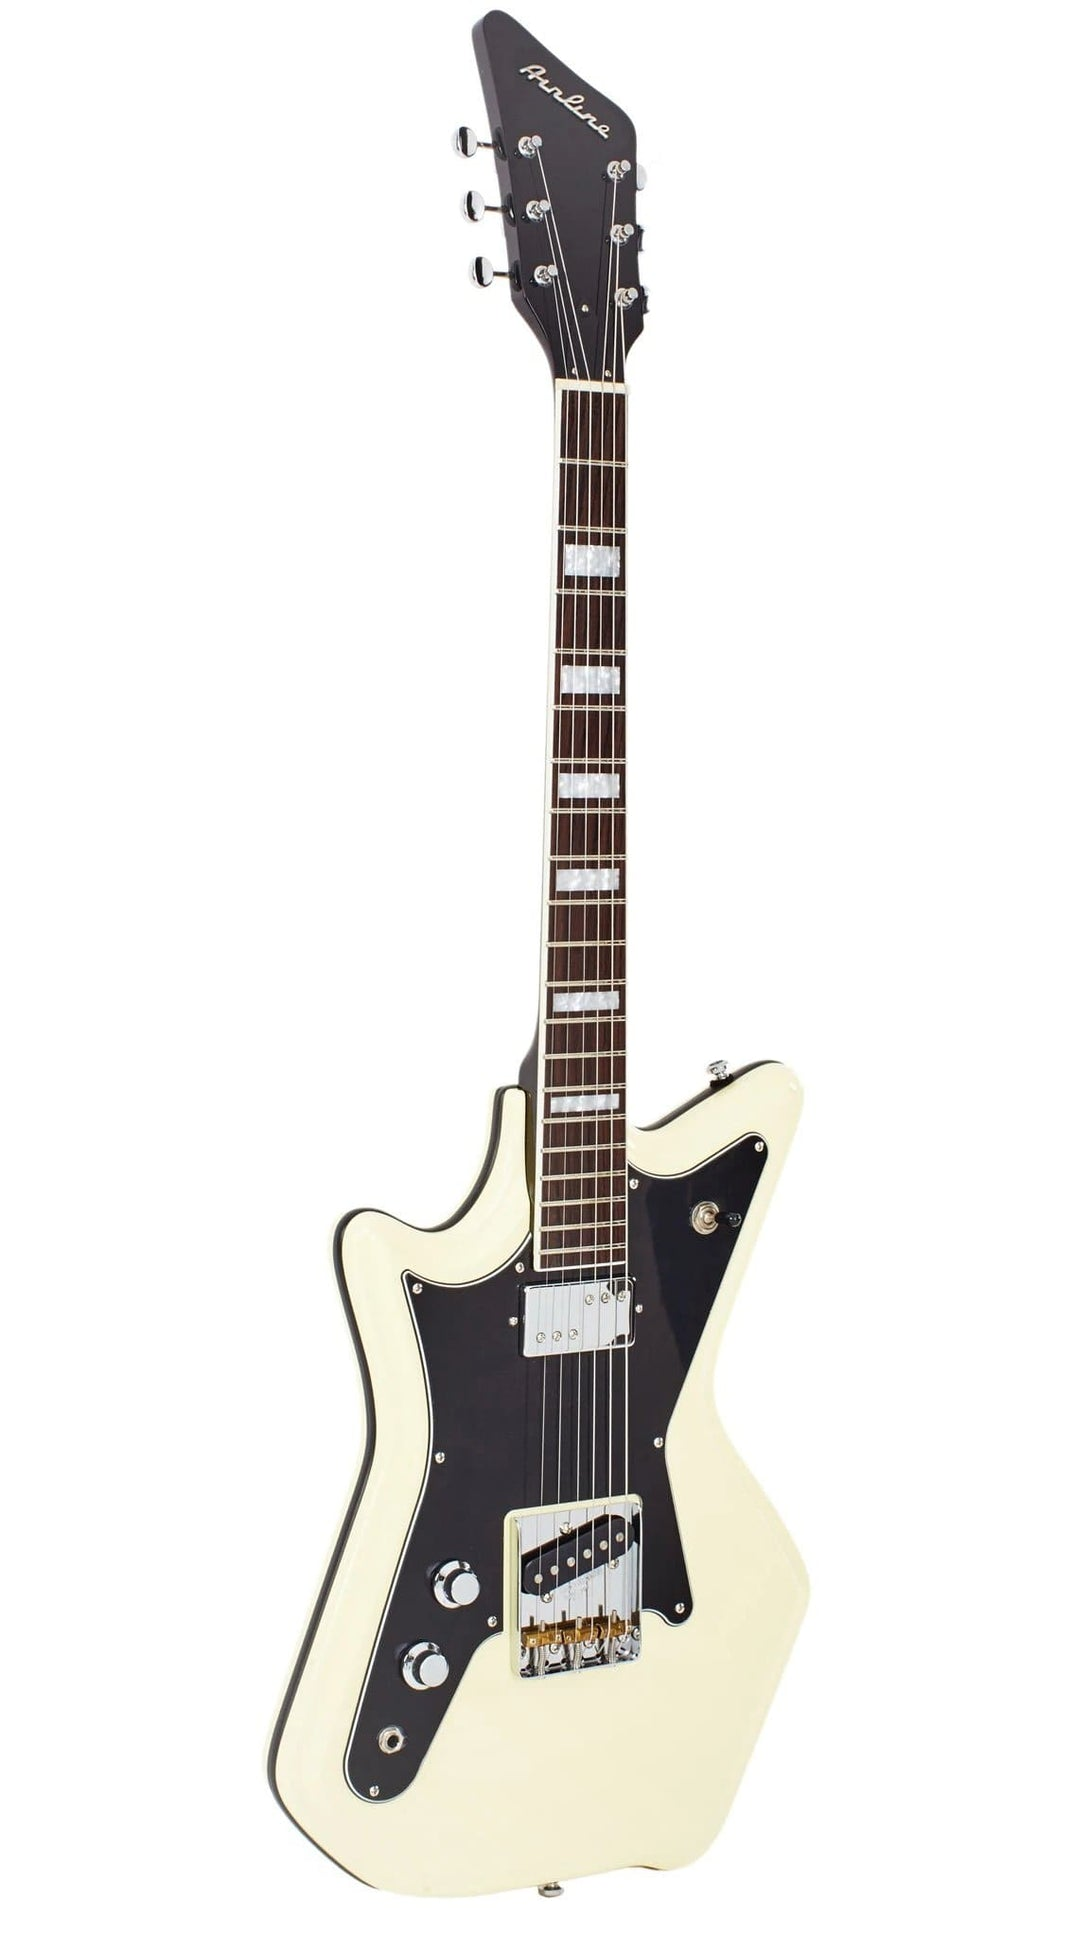 Eastwood Guitars Airline 59 2PT Vintage Cream LH Angled